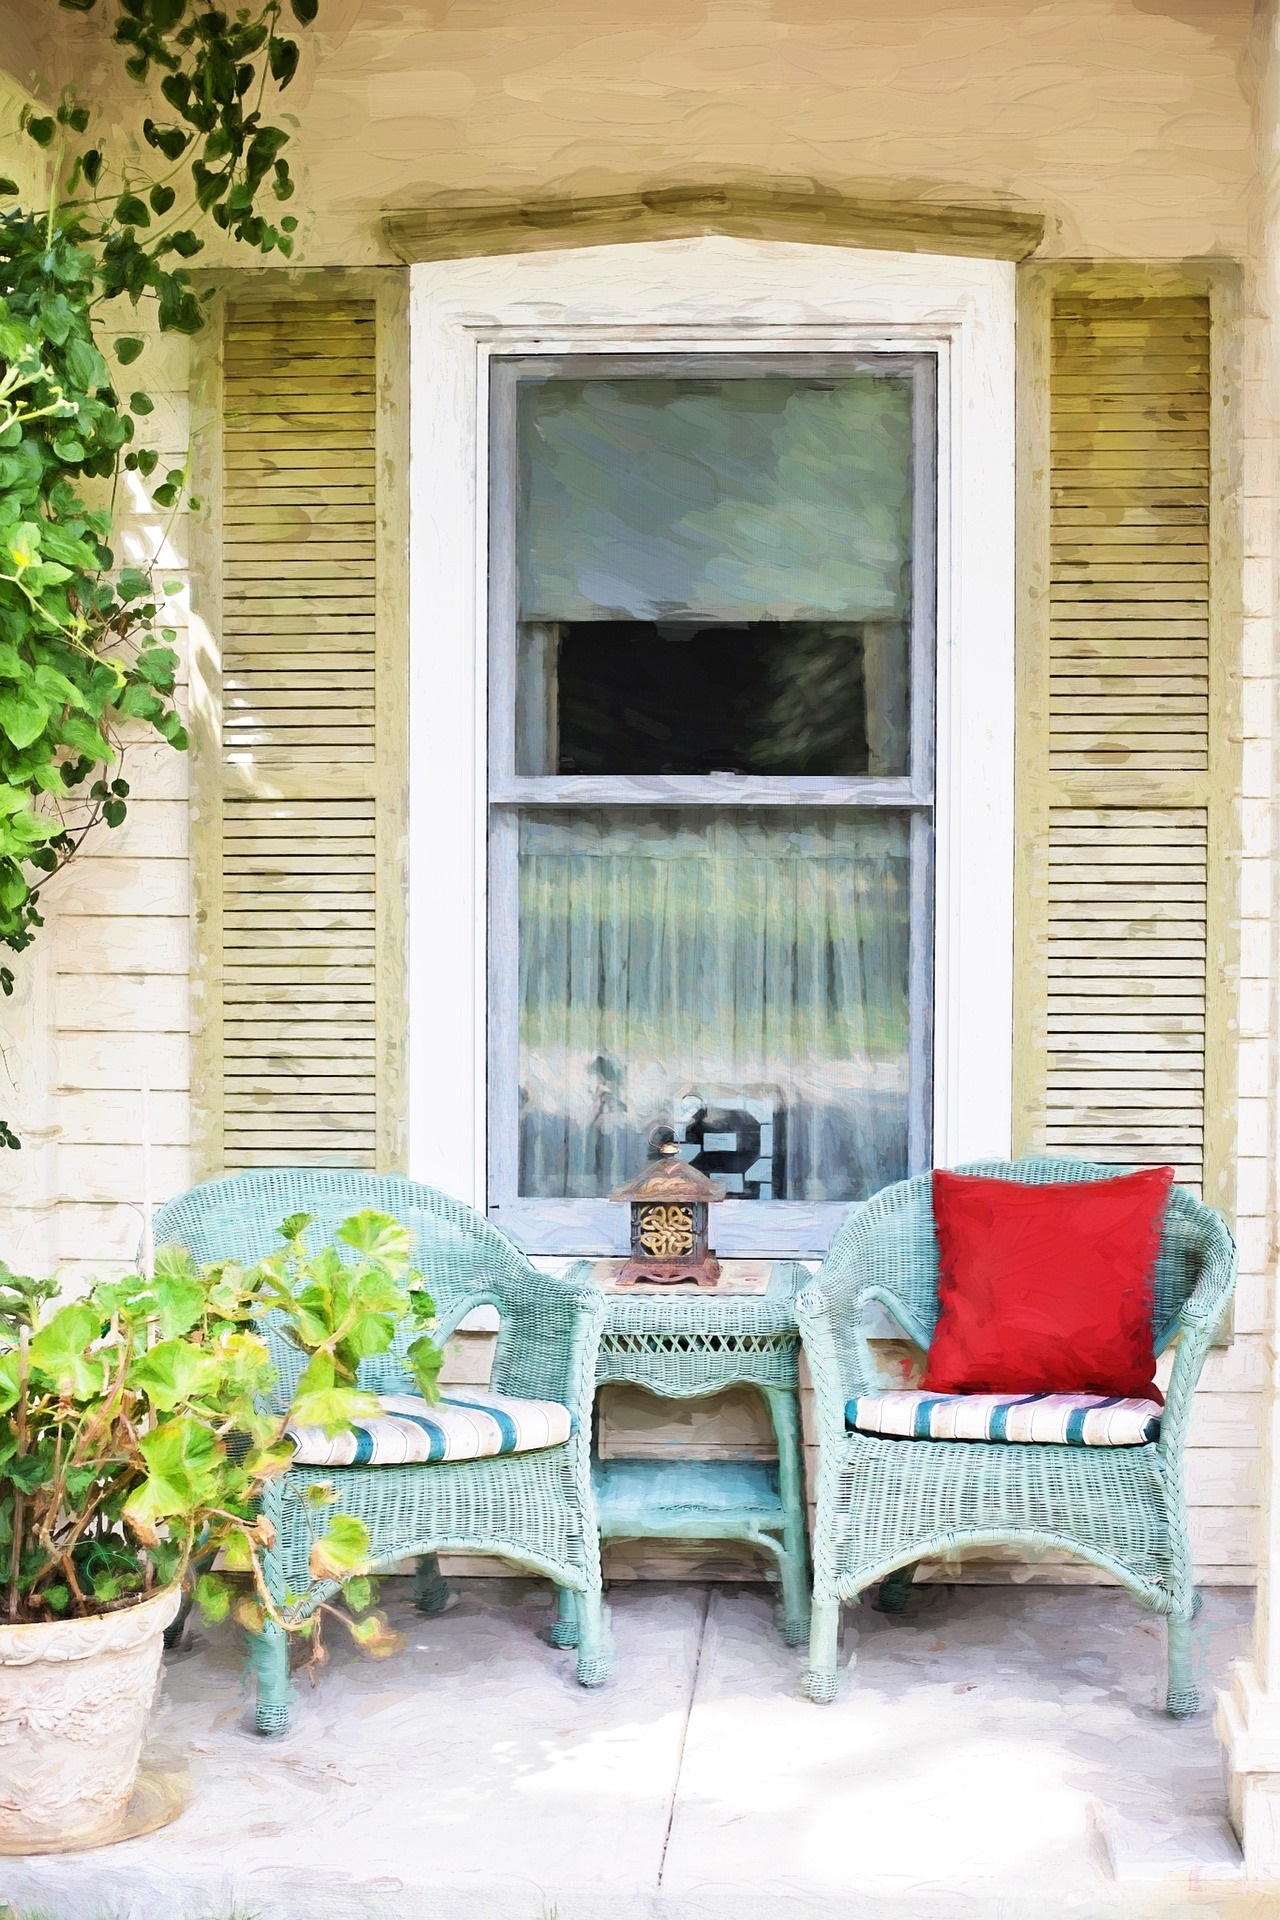 country-porch-825740_1920